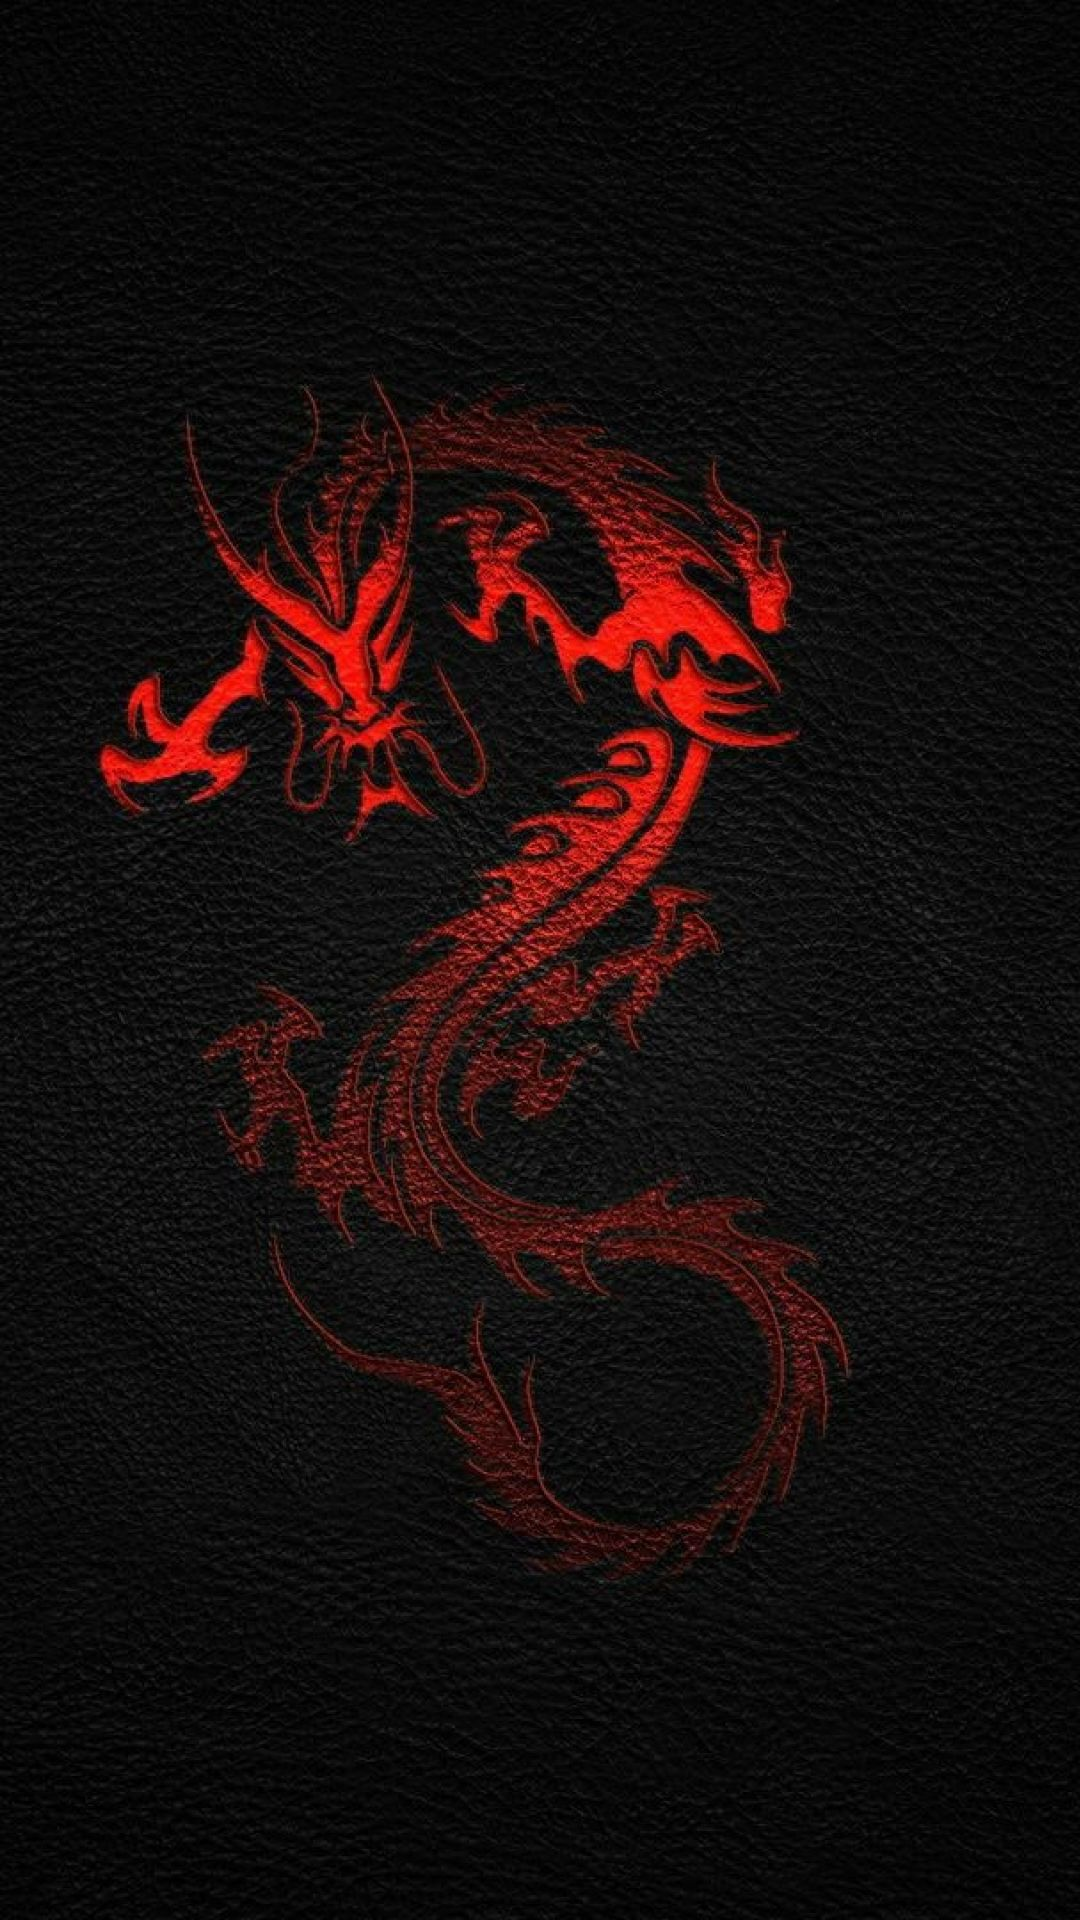 Dragon Iphone Wallpapers Top Free Dragon Iphone Backgrounds